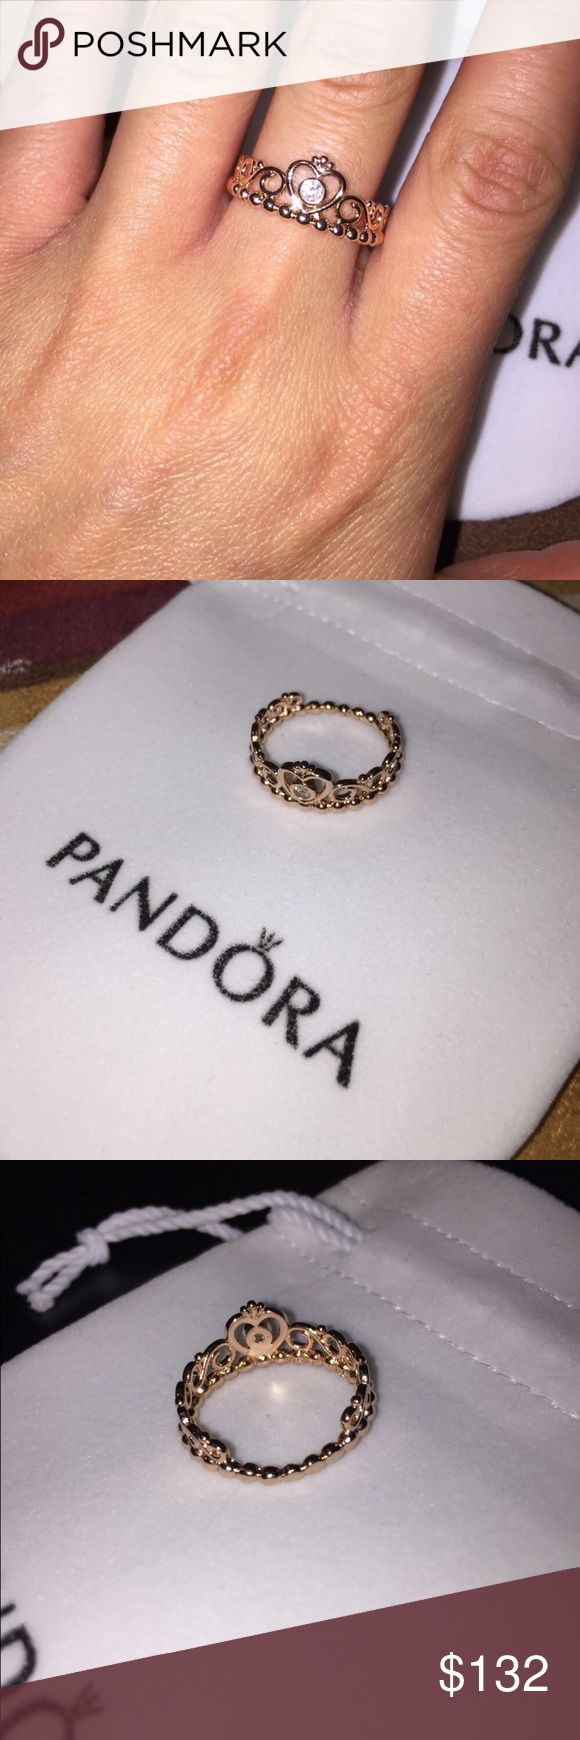 Authentic Pandora Ring w/ bag / pouch Lovely authentic rose gold ring from Pandora stamped with ALE. I never wore it. And it also comes with a Pandora pouch! :) (Accepting offers) Pandora Accessories Watches